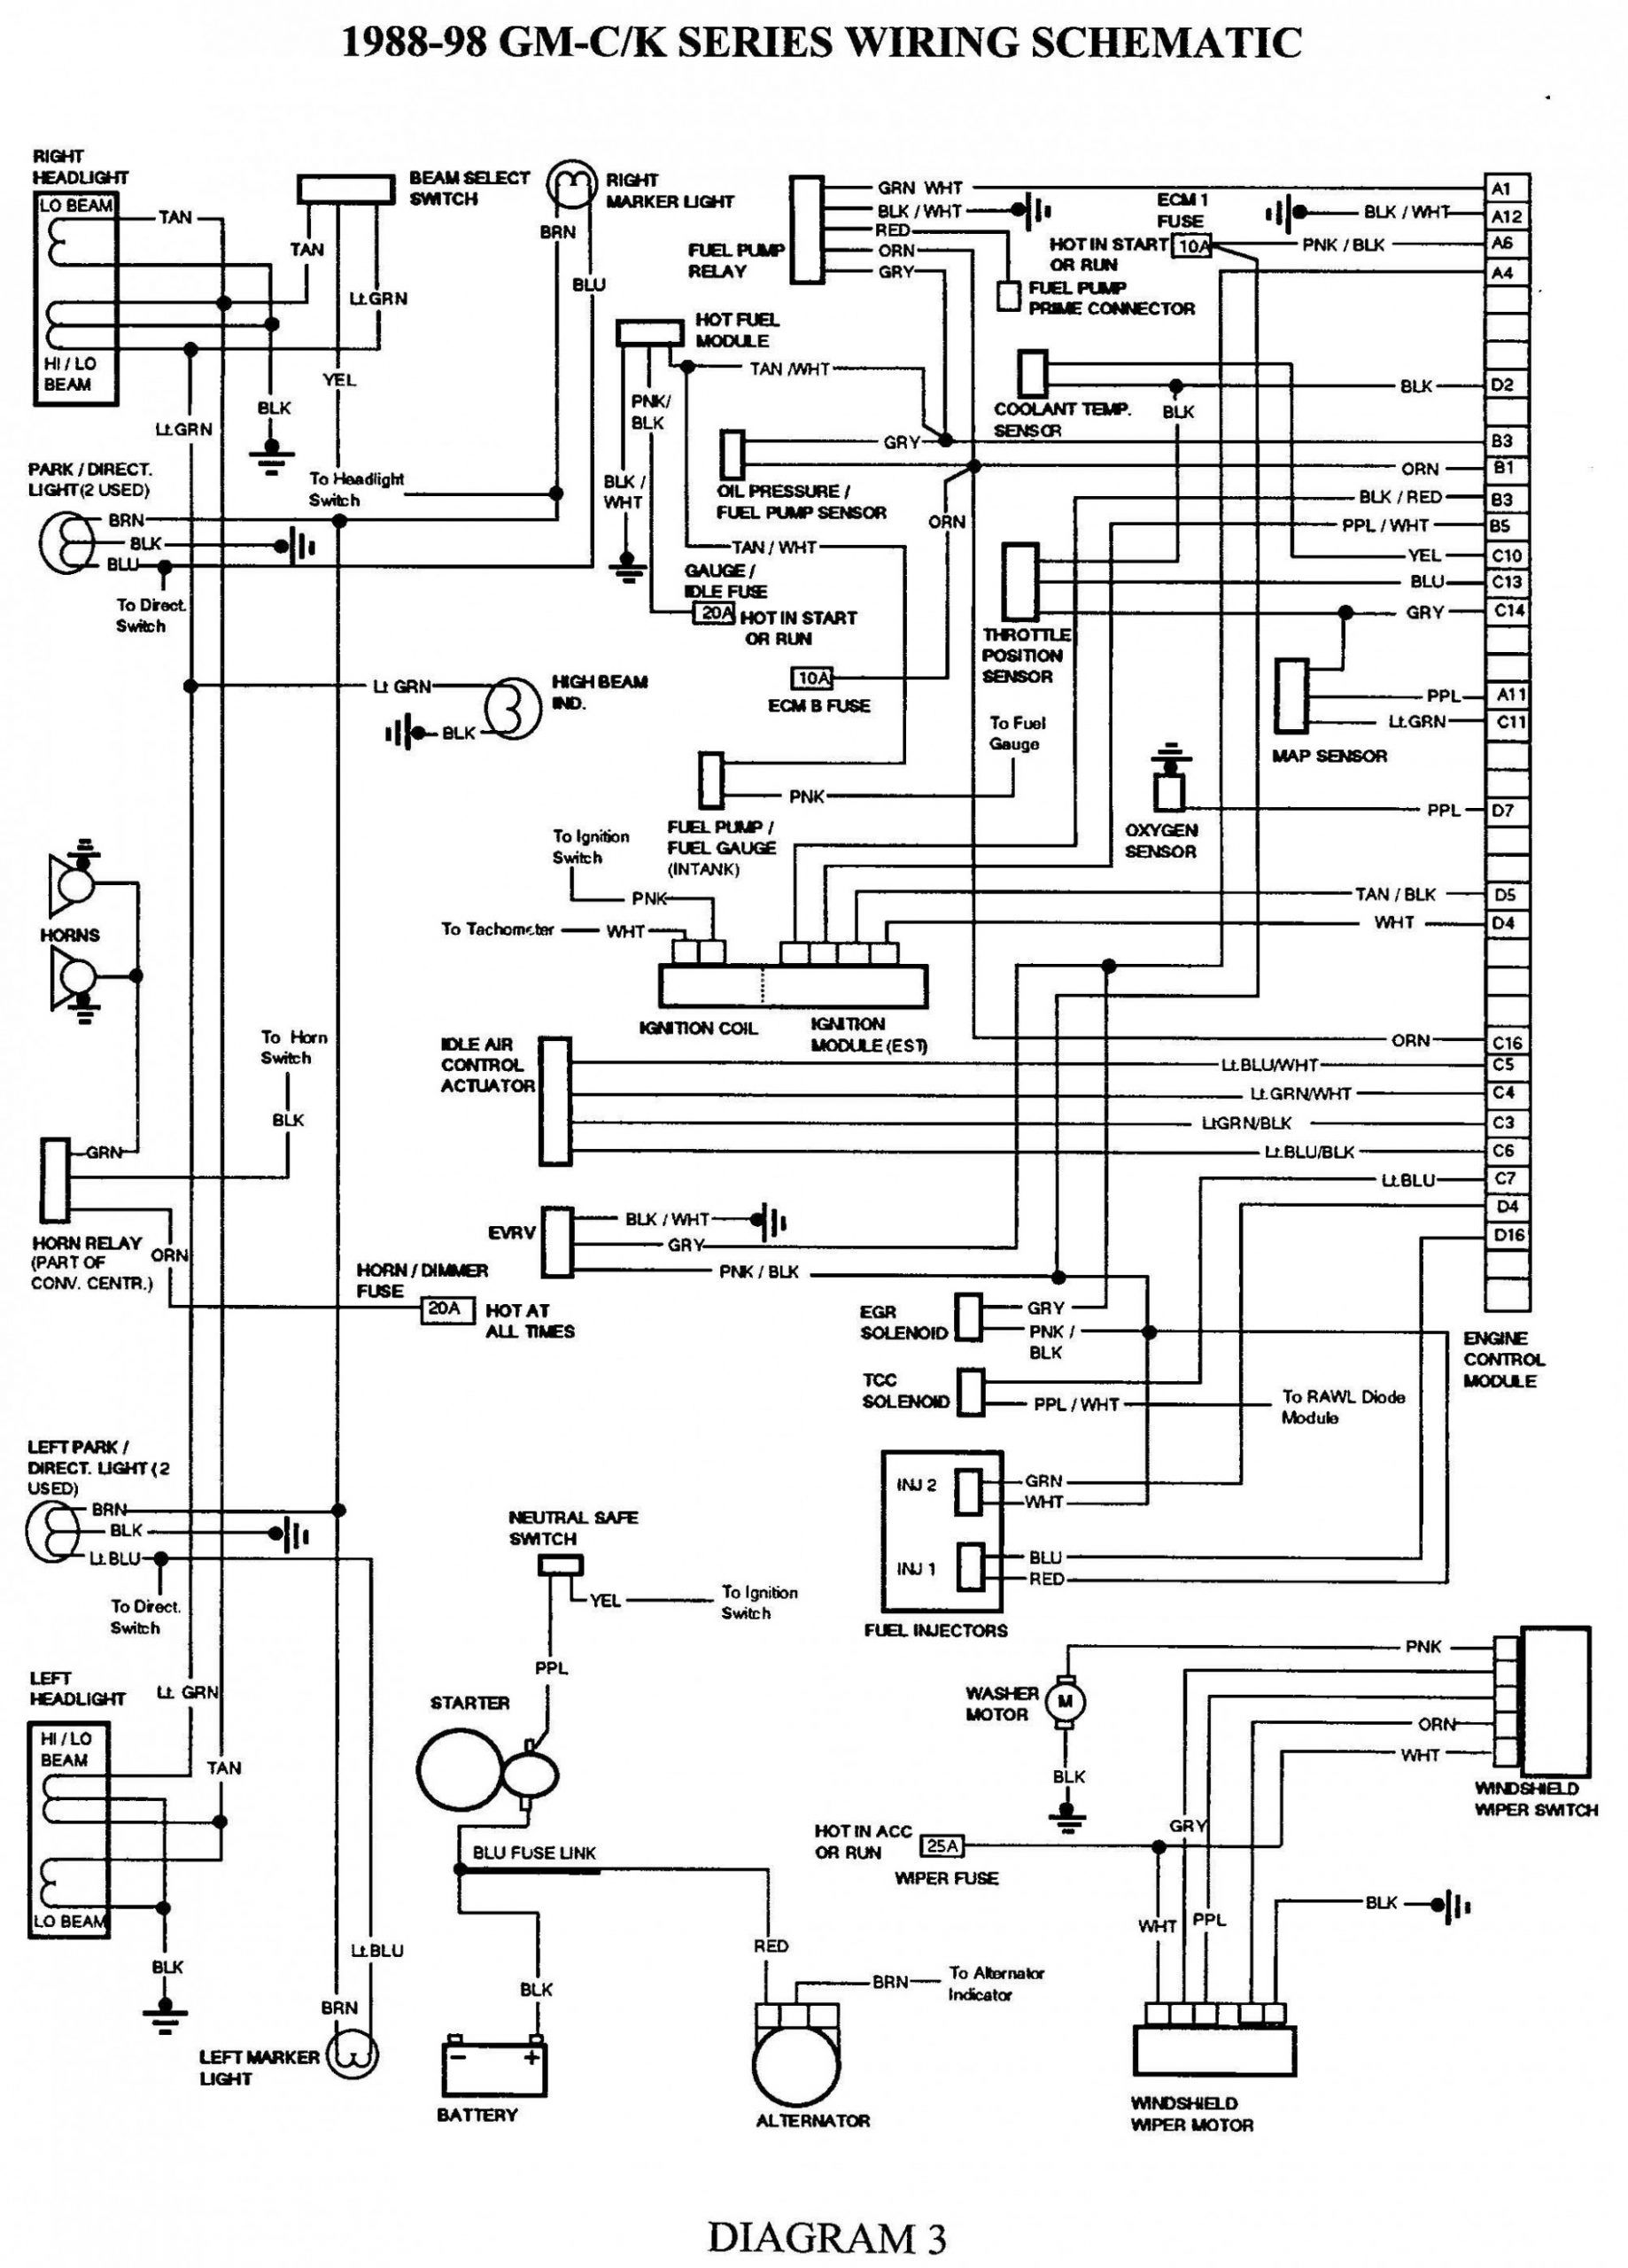 Engine Diagram 5 Jimmy Manual di 2020Pinterest